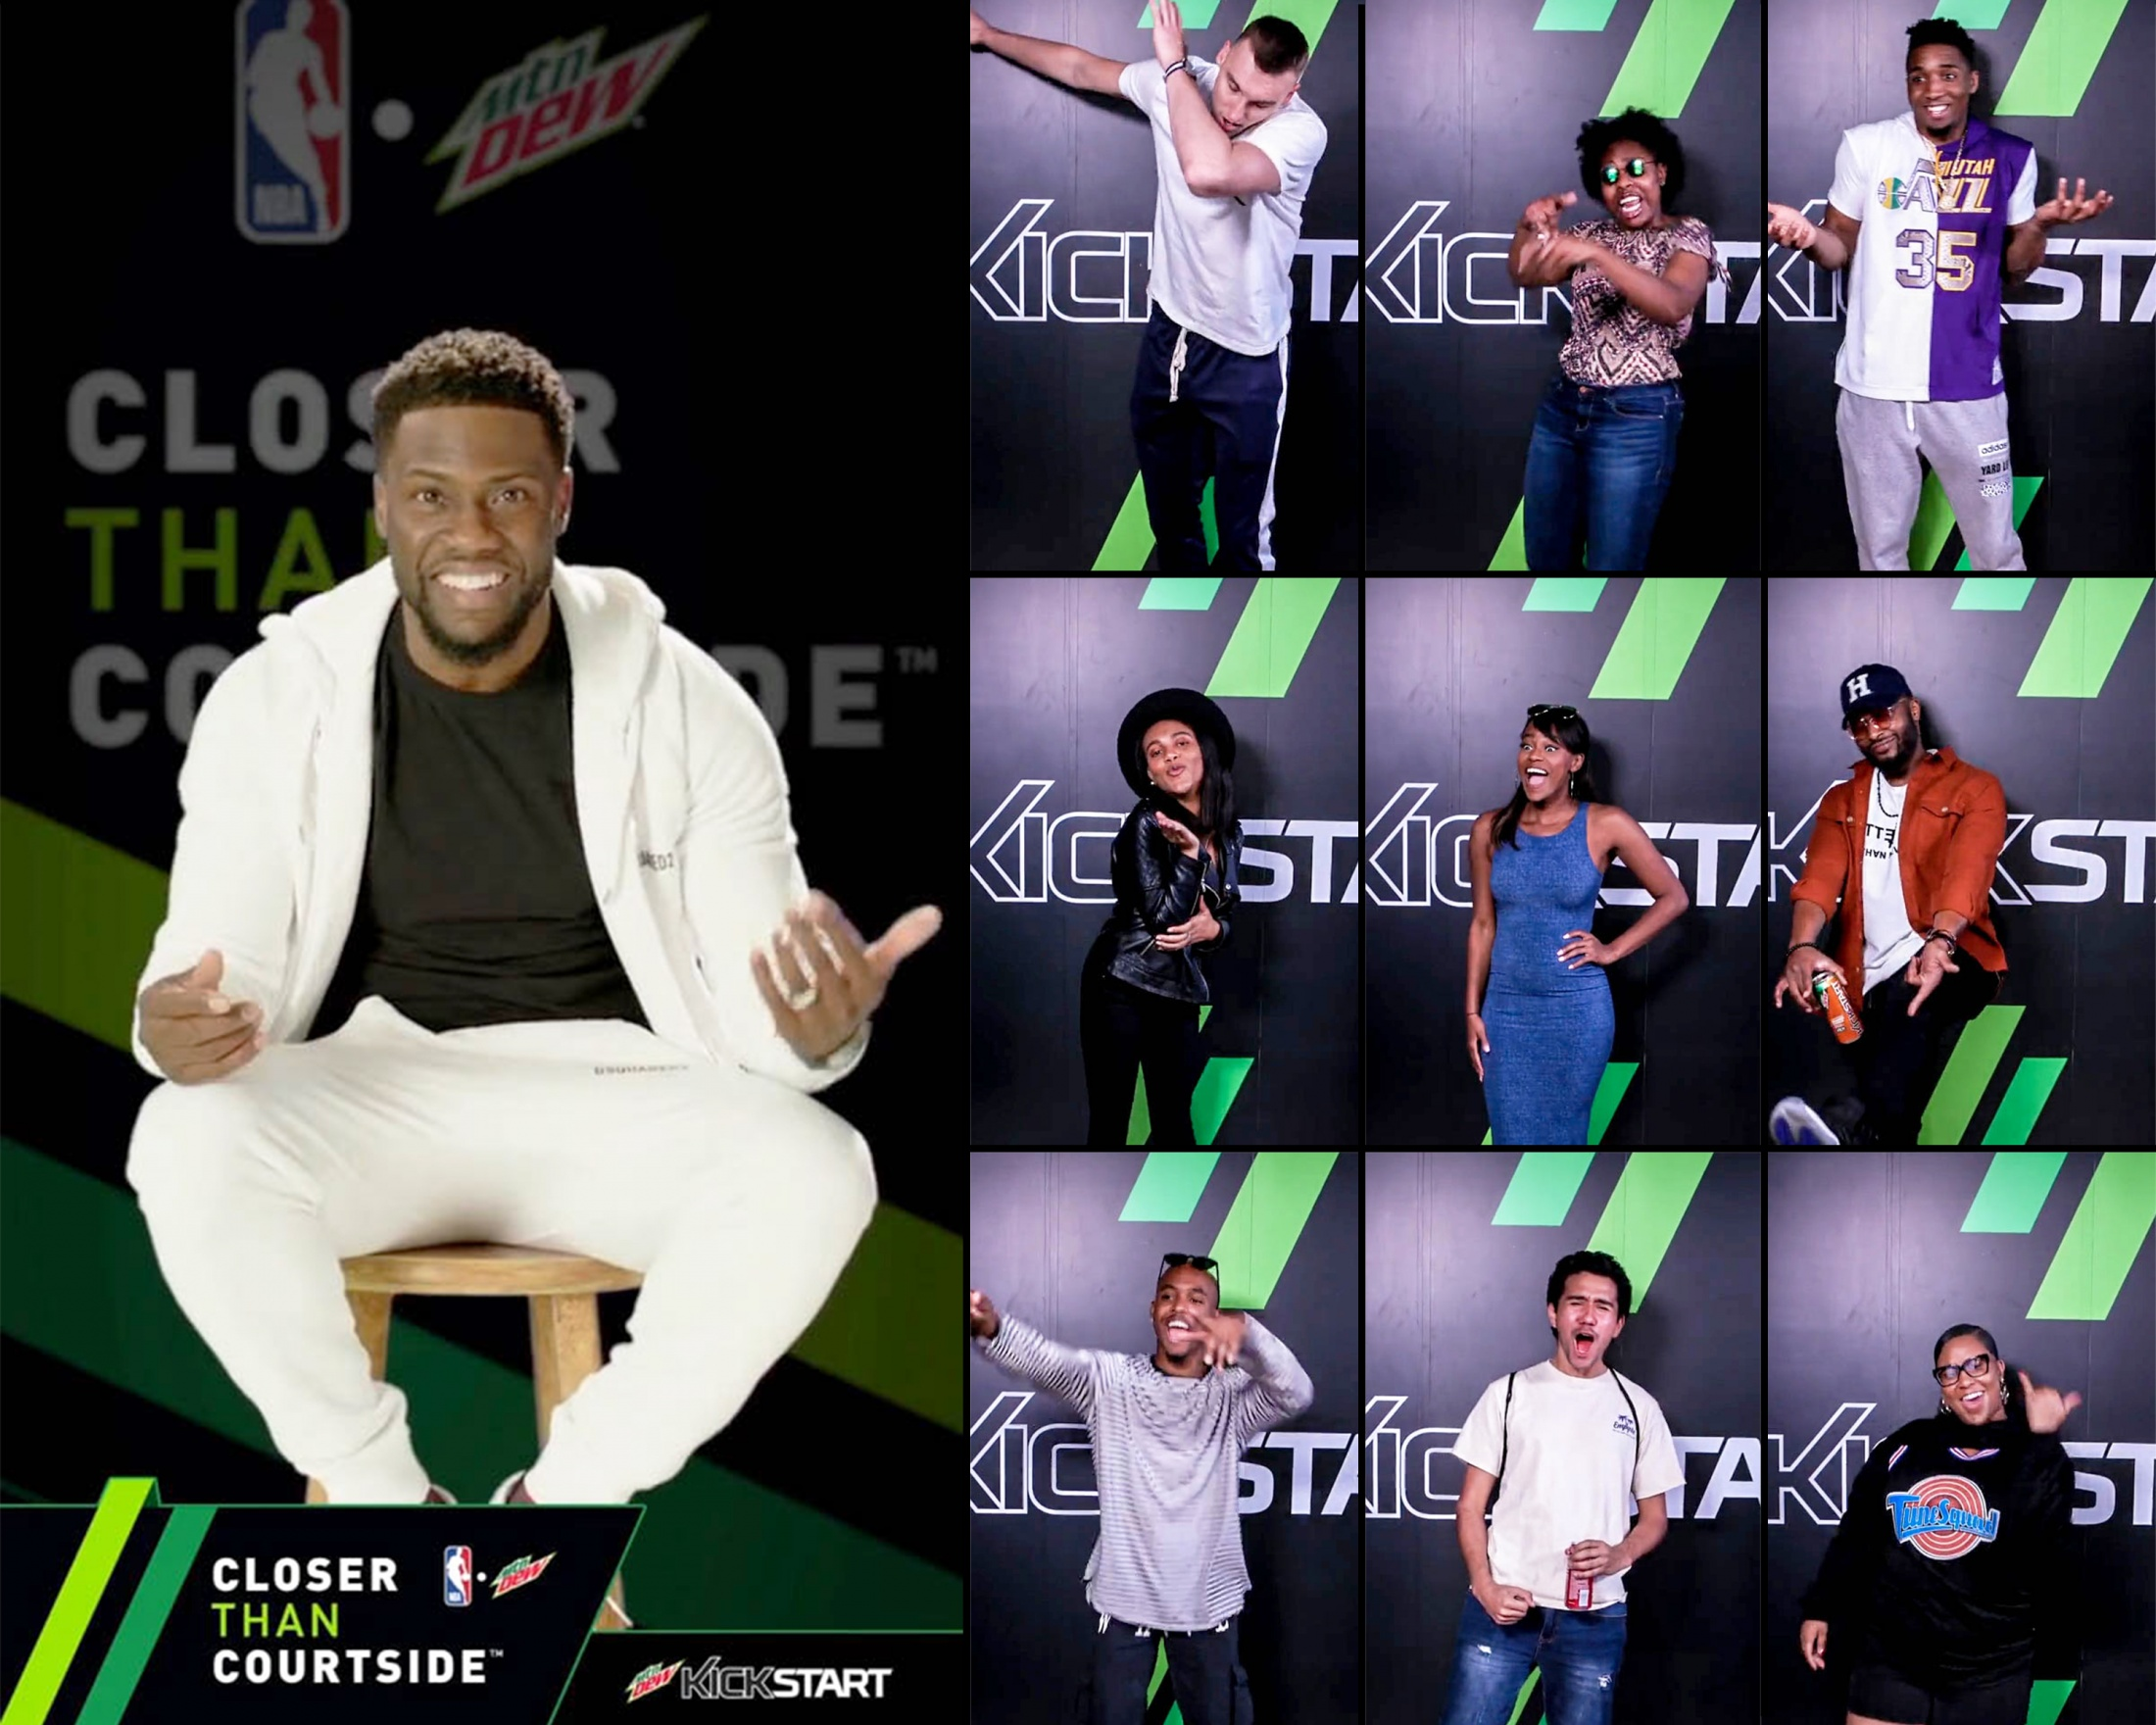 Thumbnail for Mtn Dew Kickstart Courtside Studios